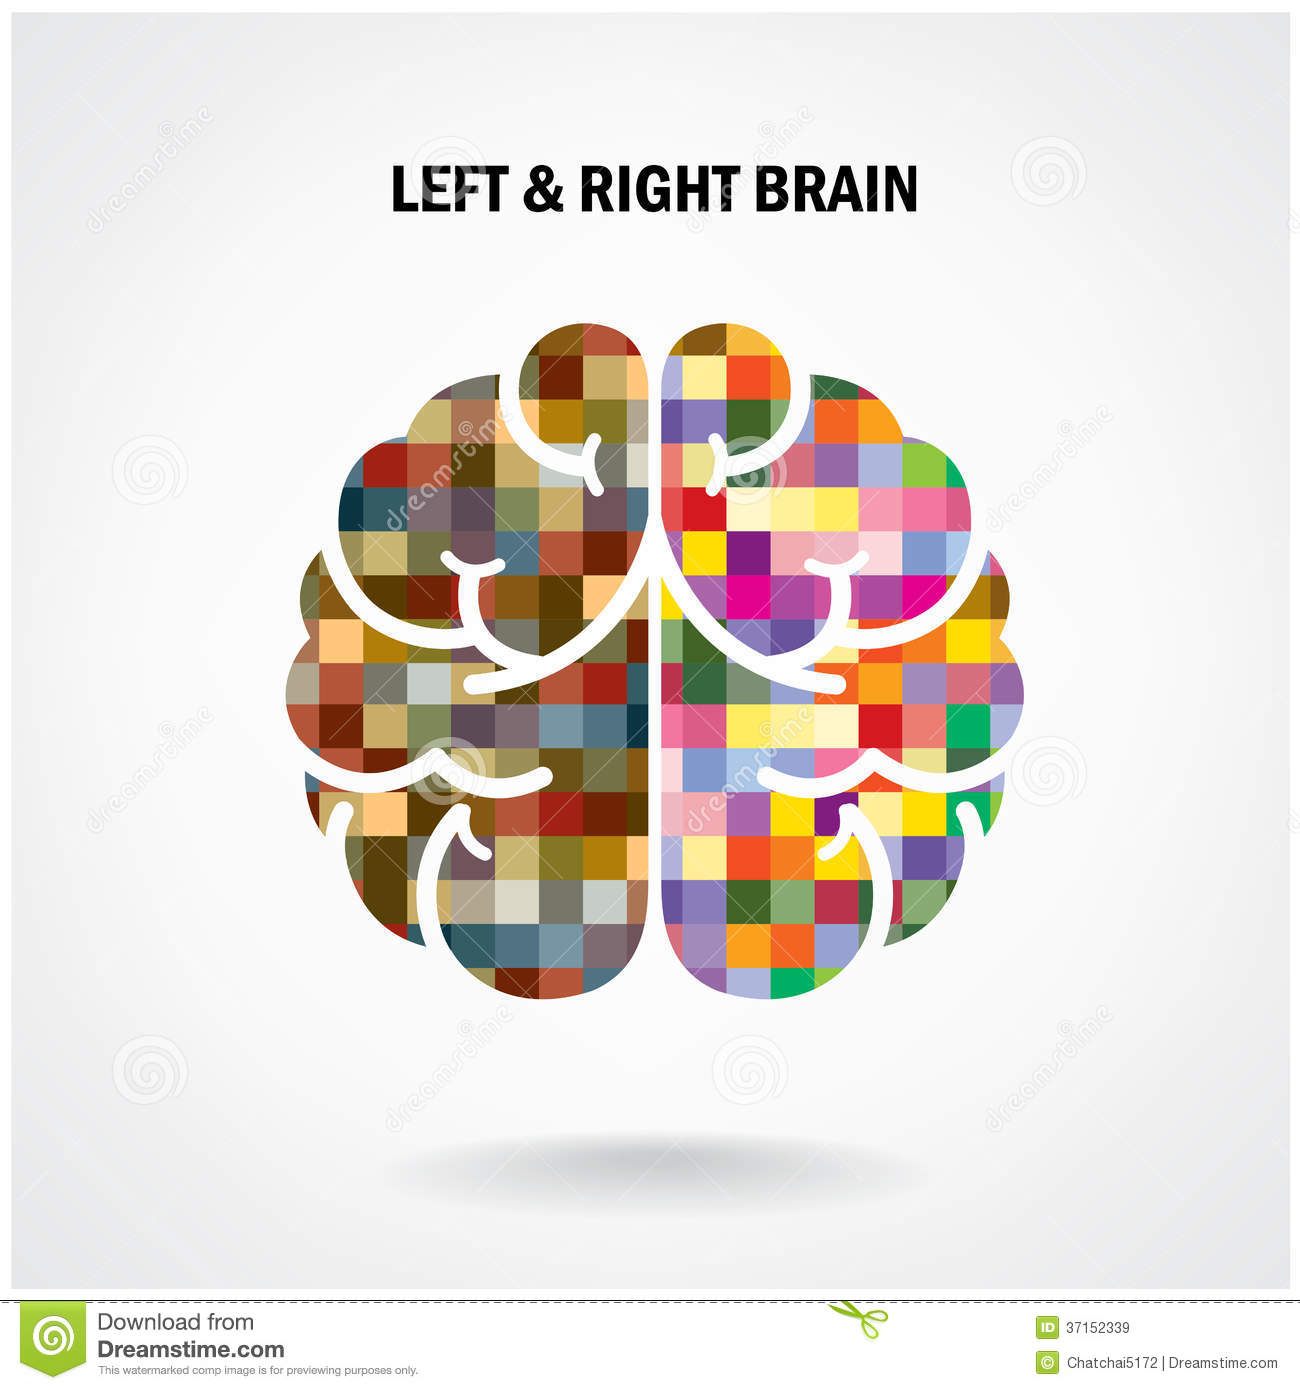 Left-brained people can be entrepreneurs, too